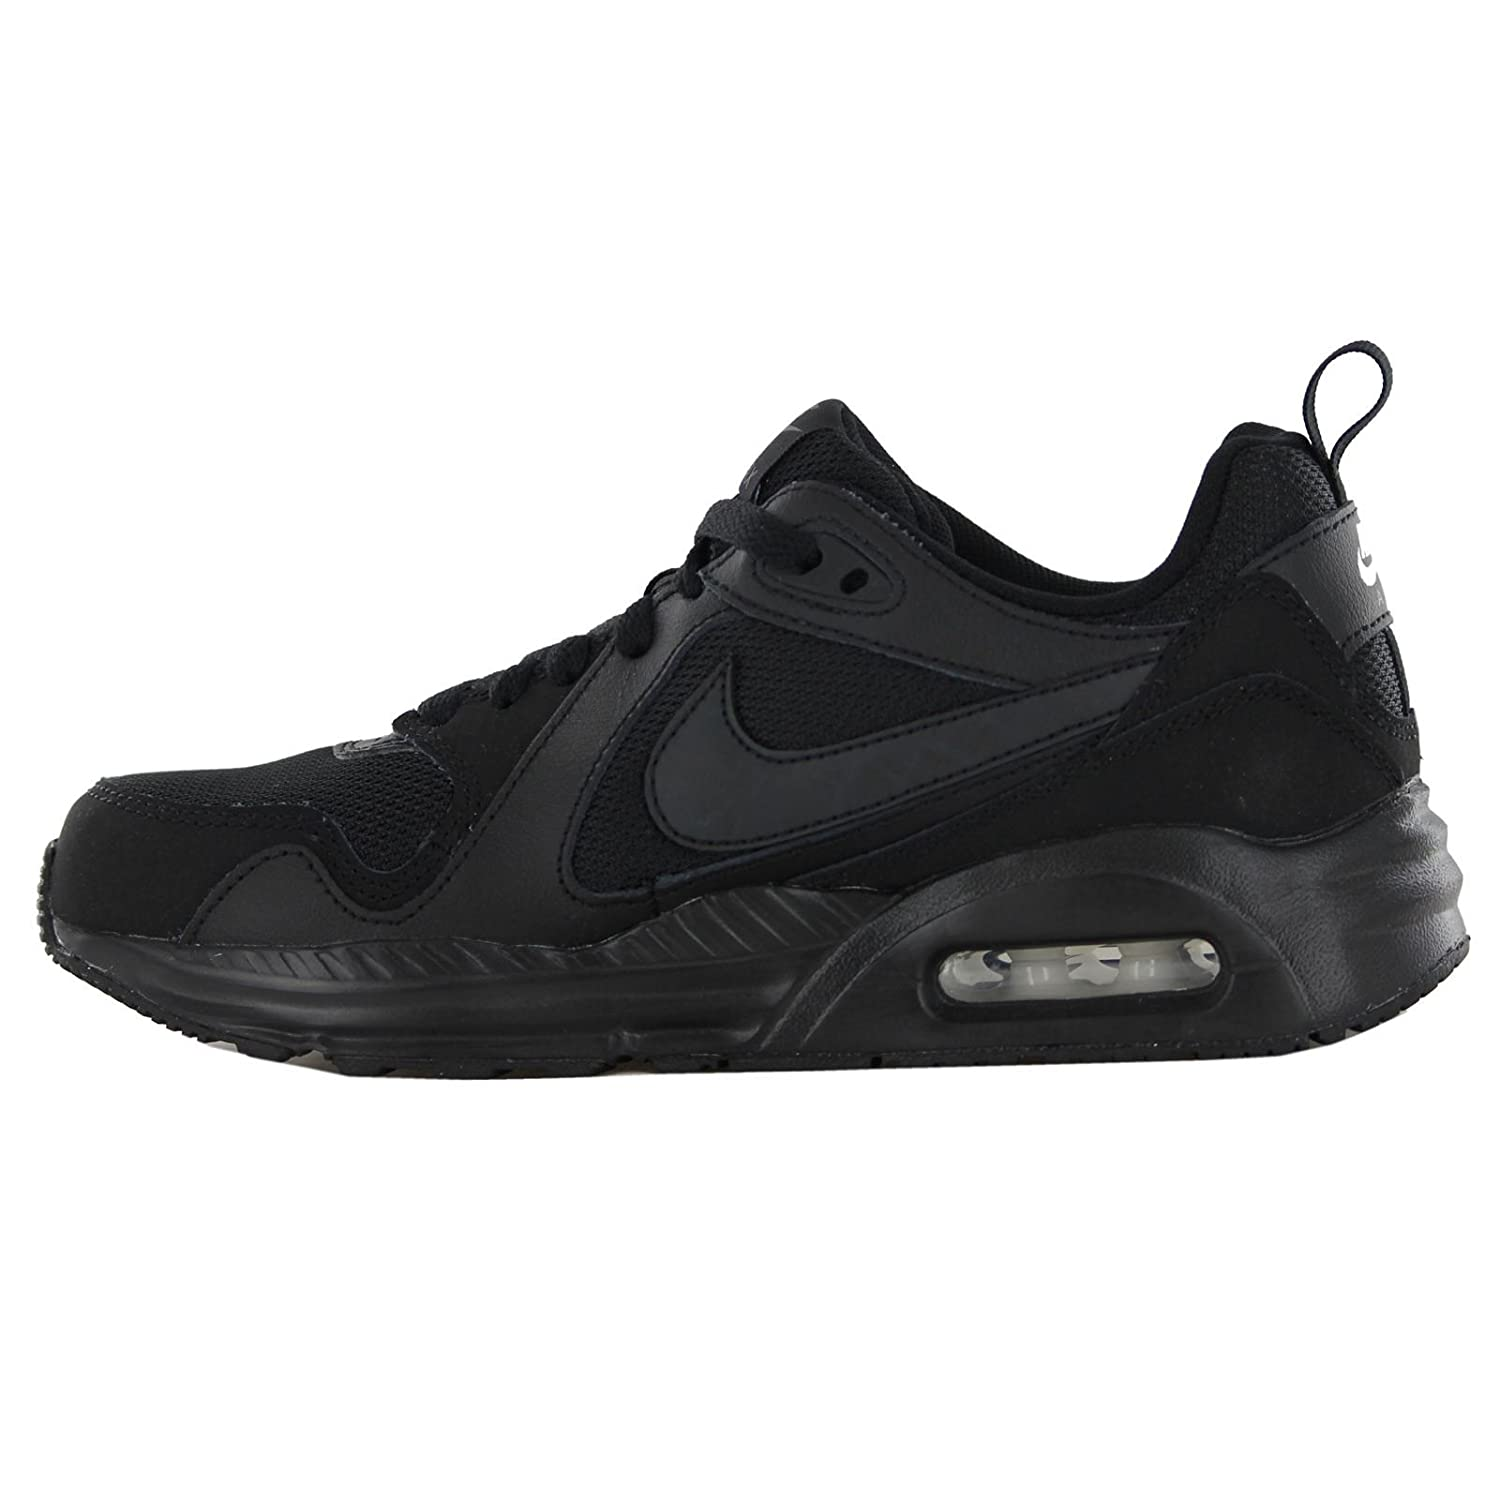 check out f6325 c2872 Nike Air Max Trax (GS) 644453009, Baskets Mode Enfant - EU 37.5